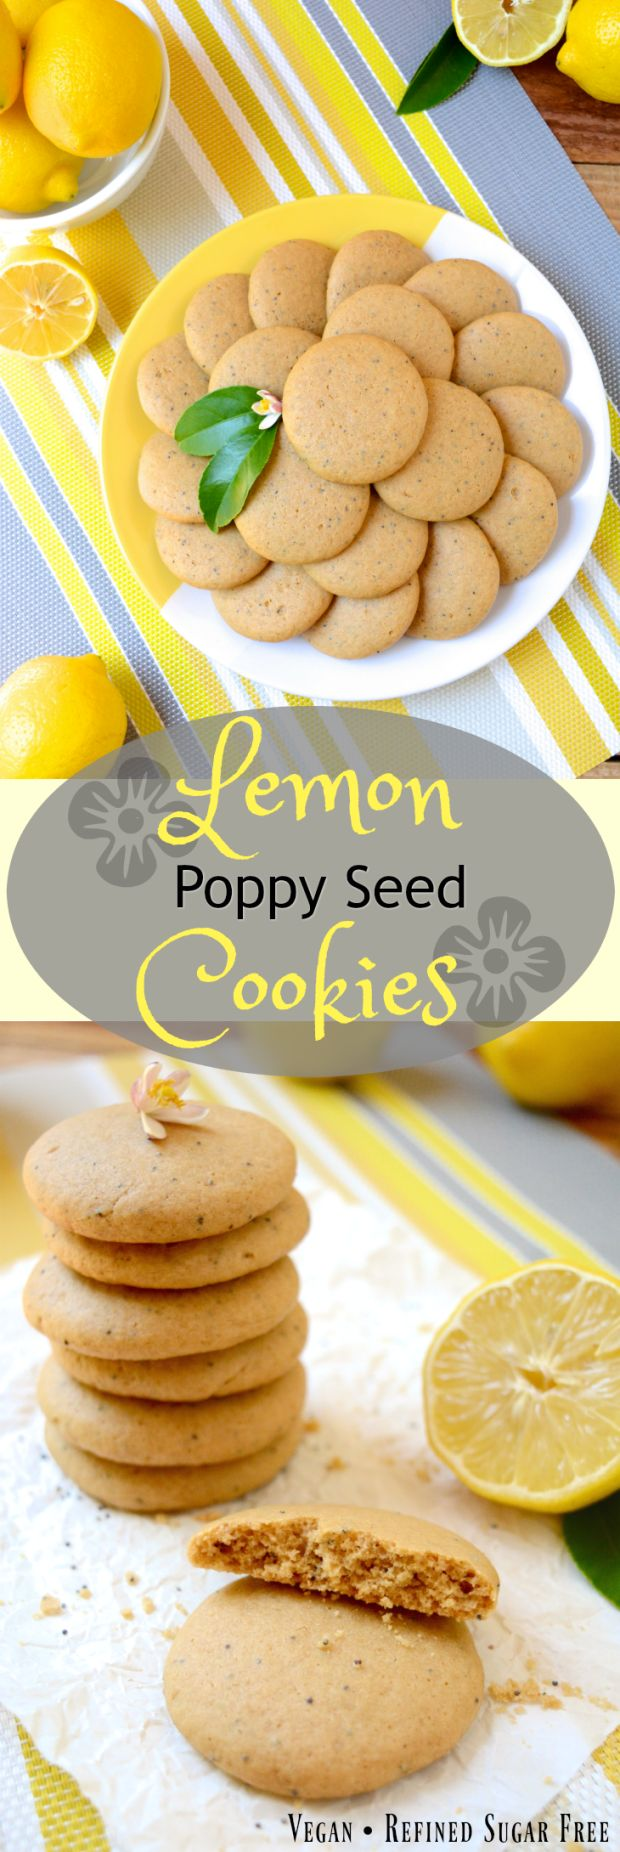 Soft, Vegan Lemon Poppy Seed Cookies, a simple recipe that's bursting with fresh lemon flavor. These melt-in-your-mouth cookies are free of egg, dairy and refined sugar –which makes them a healthier option! Flavored with fresh squeezed lemon juice, these soft and tender cookies are sure to be your new favorite treat!